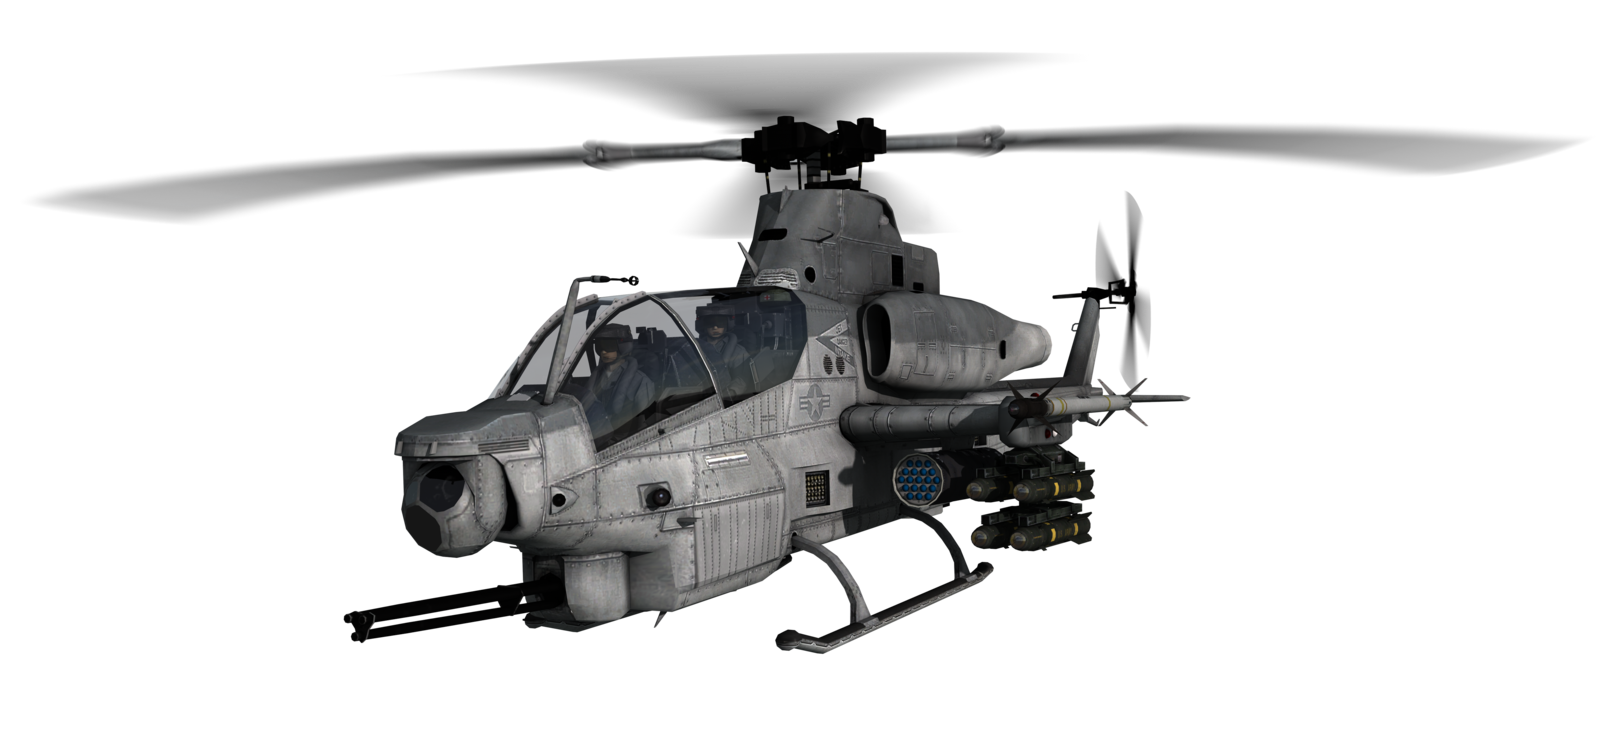 Helicopters png image free. Helicopter clipart helicopter crash